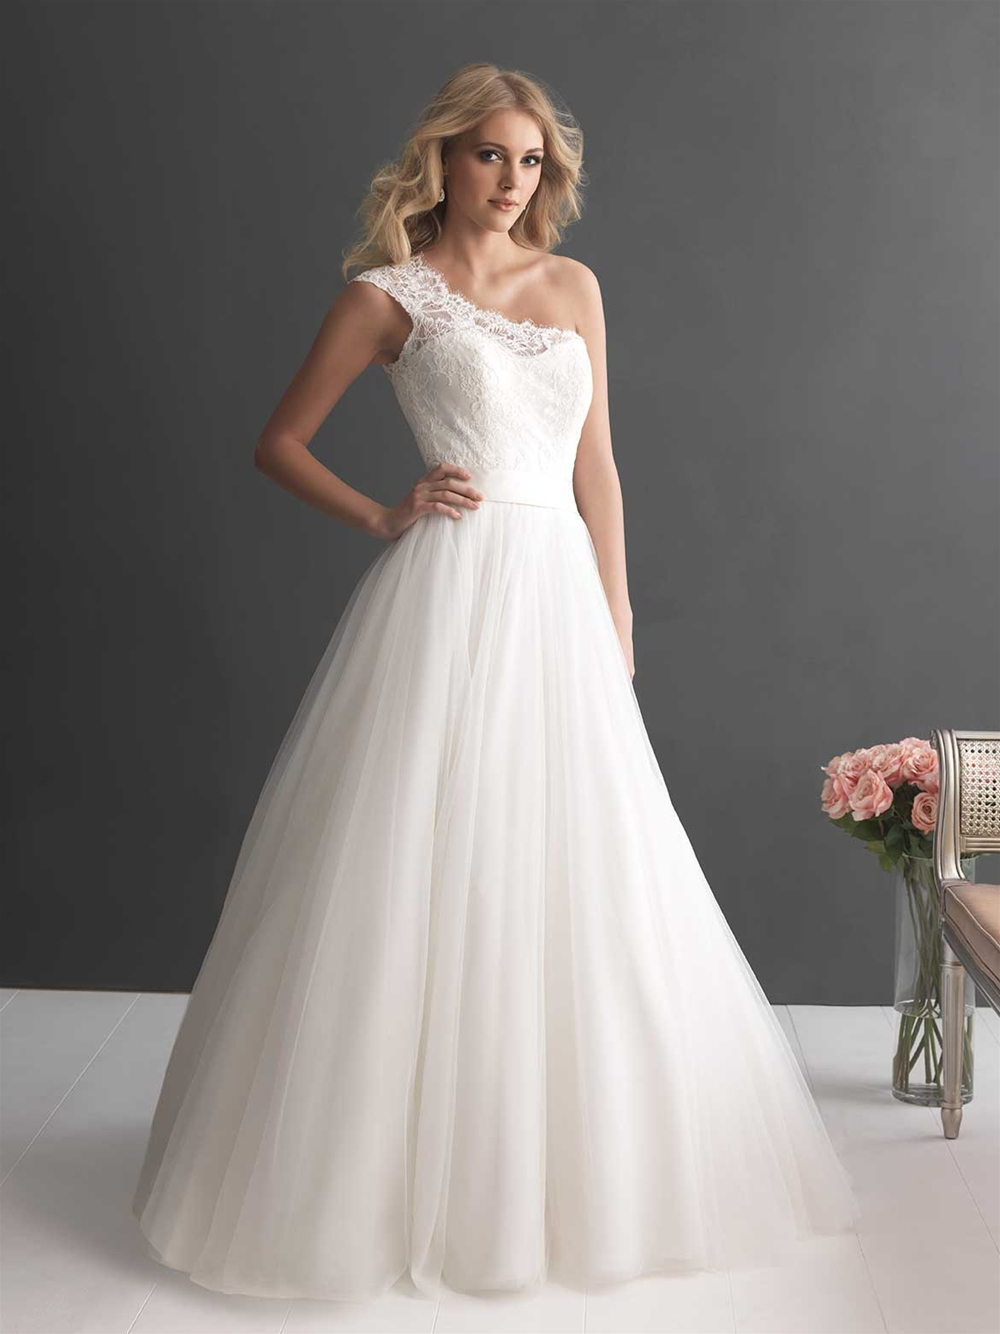 Chinese country lace wedding dress one shoulder tulle for One shoulder wedding dress